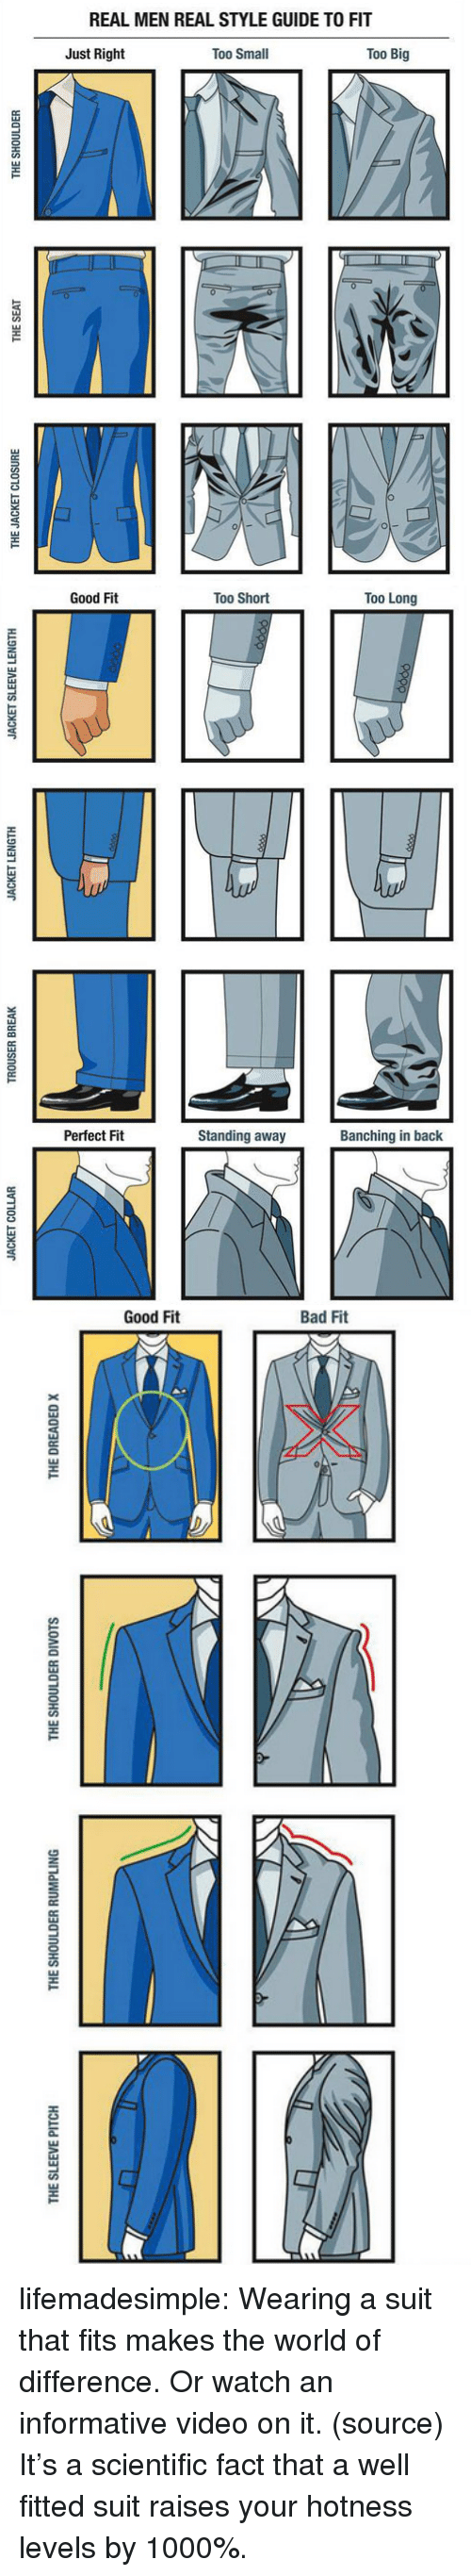 Tumblr, youtube.com, and Blog: REAL MEN REAL STYLE GUIDE TO FIT  Just Right  Too Small  Too Big  0  1   Good Fit  Too Short  Too Long  Perfect Fit  Standing away  Banching in back   THE SLEEVE PITCH  THE SHOULDER RUMPLING  THE SHOULDER DIVOTS  THE DREADED x lifemadesimple:  Wearing a suit that fits makes the world of difference. Or watch an informative video on it. (source)  It's a scientific fact that a well fitted suit raises your hotness levels by 1000%.